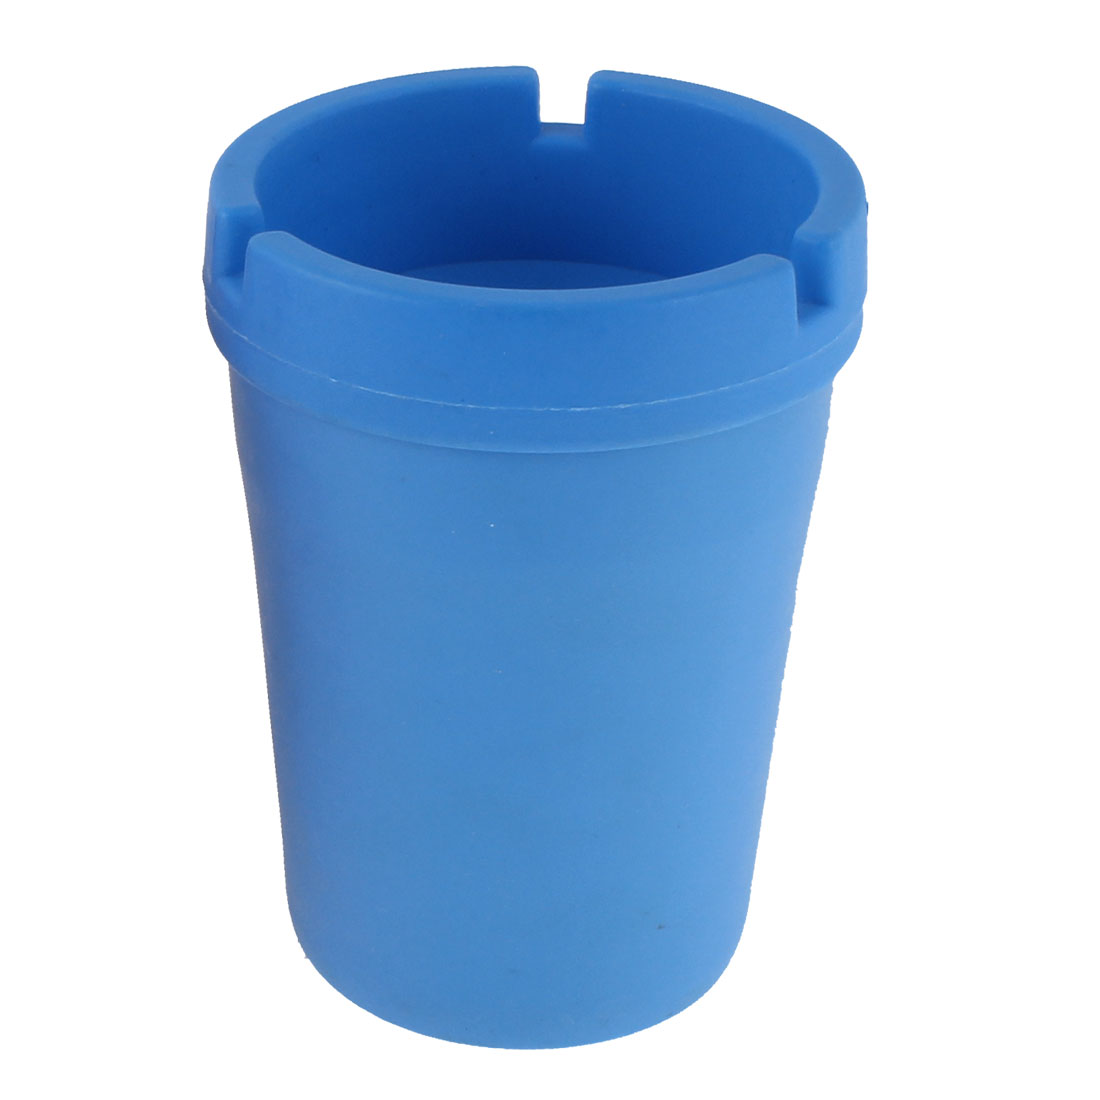 Travel Auto Car Plastic Extinguishing Butt Bucket Cigarette Ashtray Holder Blue